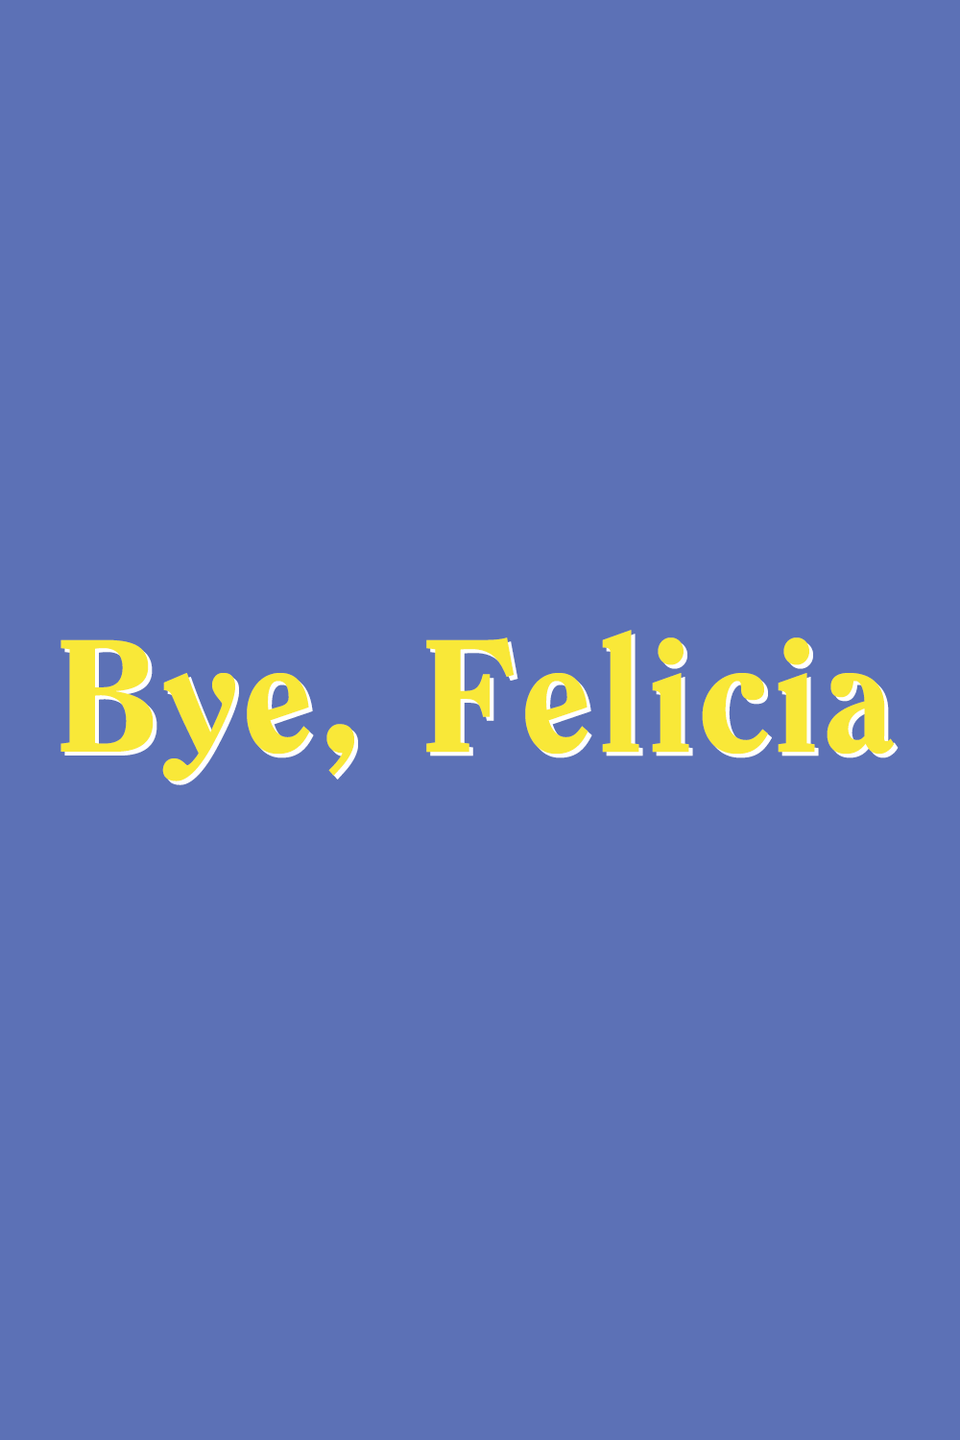 "<p>If you're tired of putting up with someone, tell them, ""Bye, Felicia!"" It's a way of dismissing them or their request. In 1995's <em><a href=""https://www.amazon.com/Friday-Ice-Cube/dp/B0070YR5UW?tag=syn-yahoo-20&ascsubtag=%5Bartid%7C10063.g.36061267%5Bsrc%7Cyahoo-us"" rel=""nofollow noopener"" target=""_blank"" data-ylk=""slk:Friday"" class=""link rapid-noclick-resp"">Friday</a>, </em>Ice Cube used the term <a href=""https://www.youtube.com/watch?time_continue=44&v=G05u7ihoYQA"" rel=""nofollow noopener"" target=""_blank"" data-ylk=""slk:in a scene"" class=""link rapid-noclick-resp"">in a scene</a> during which his character responds to Felicia's (Angela Means-Kaaya) unapproved request to borrow Smokey's (Chris Tucker) car.</p>"